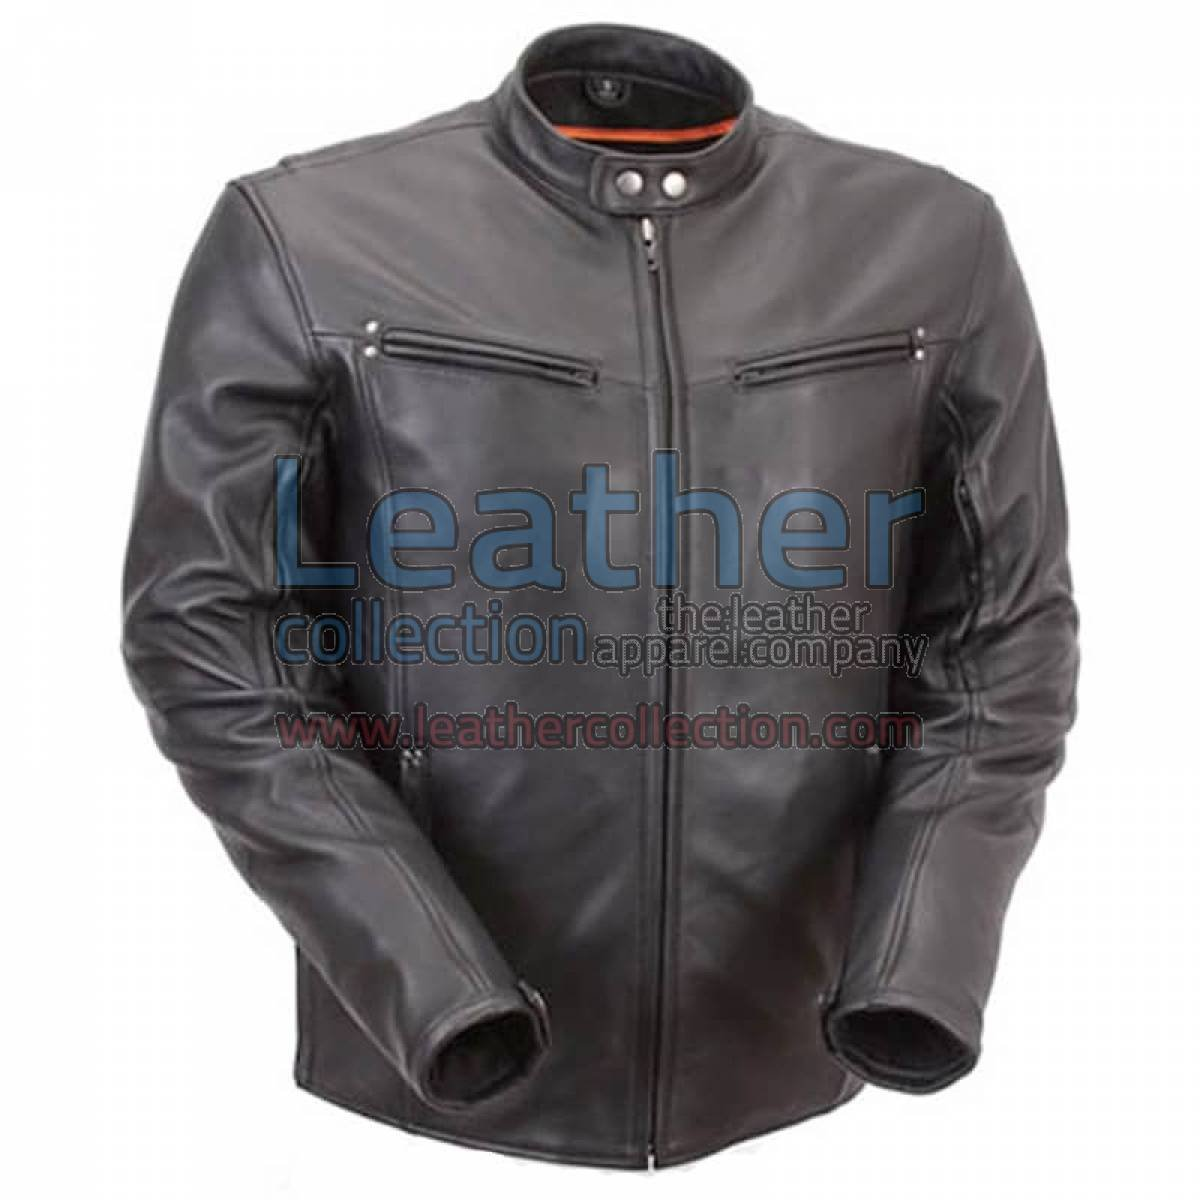 Premium Leather Rider Jacket with Multiple Vents